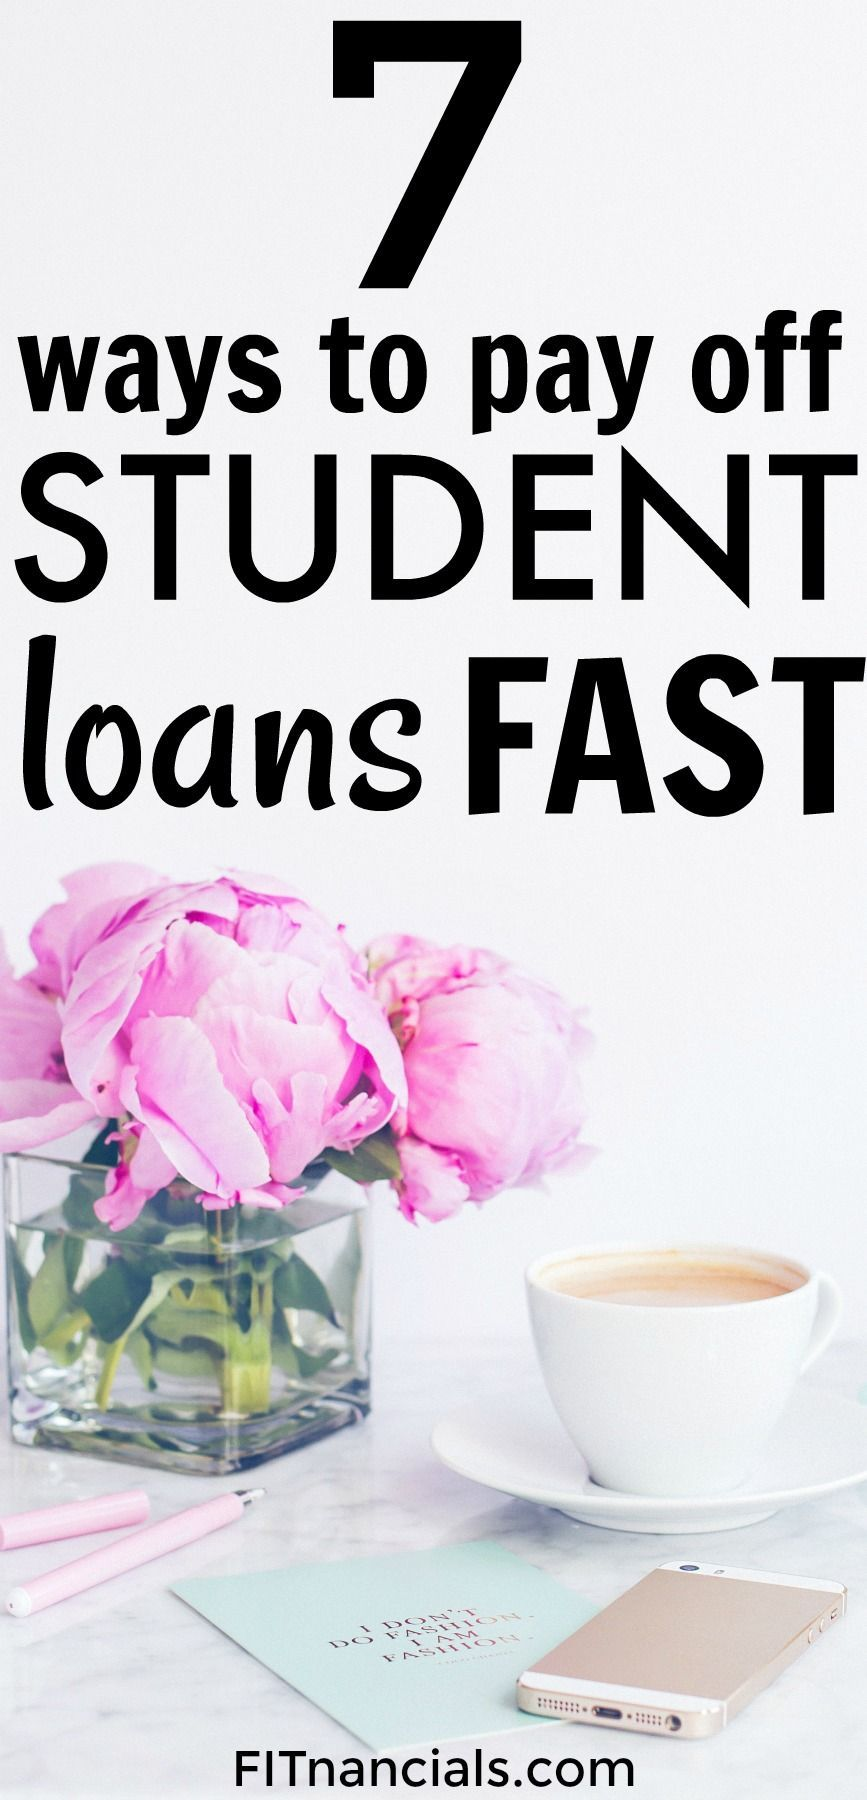 Check out this list on how to pay off student loans quick